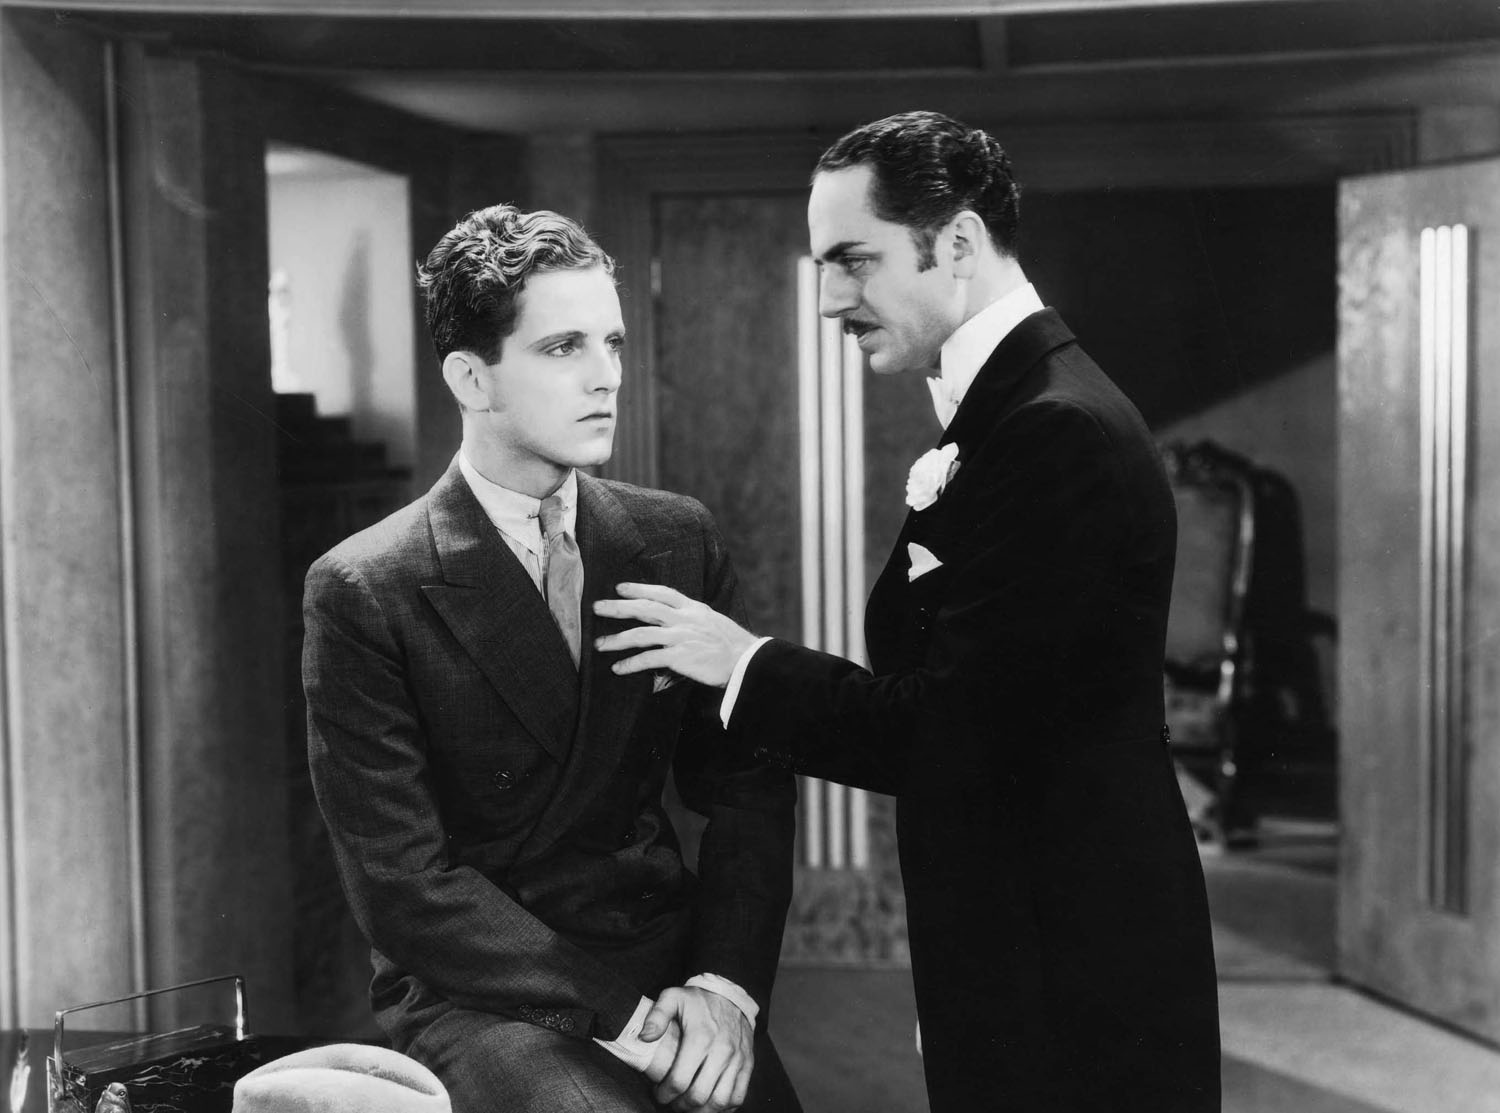 Phillips Holmes, William Powell in Pointed Heels